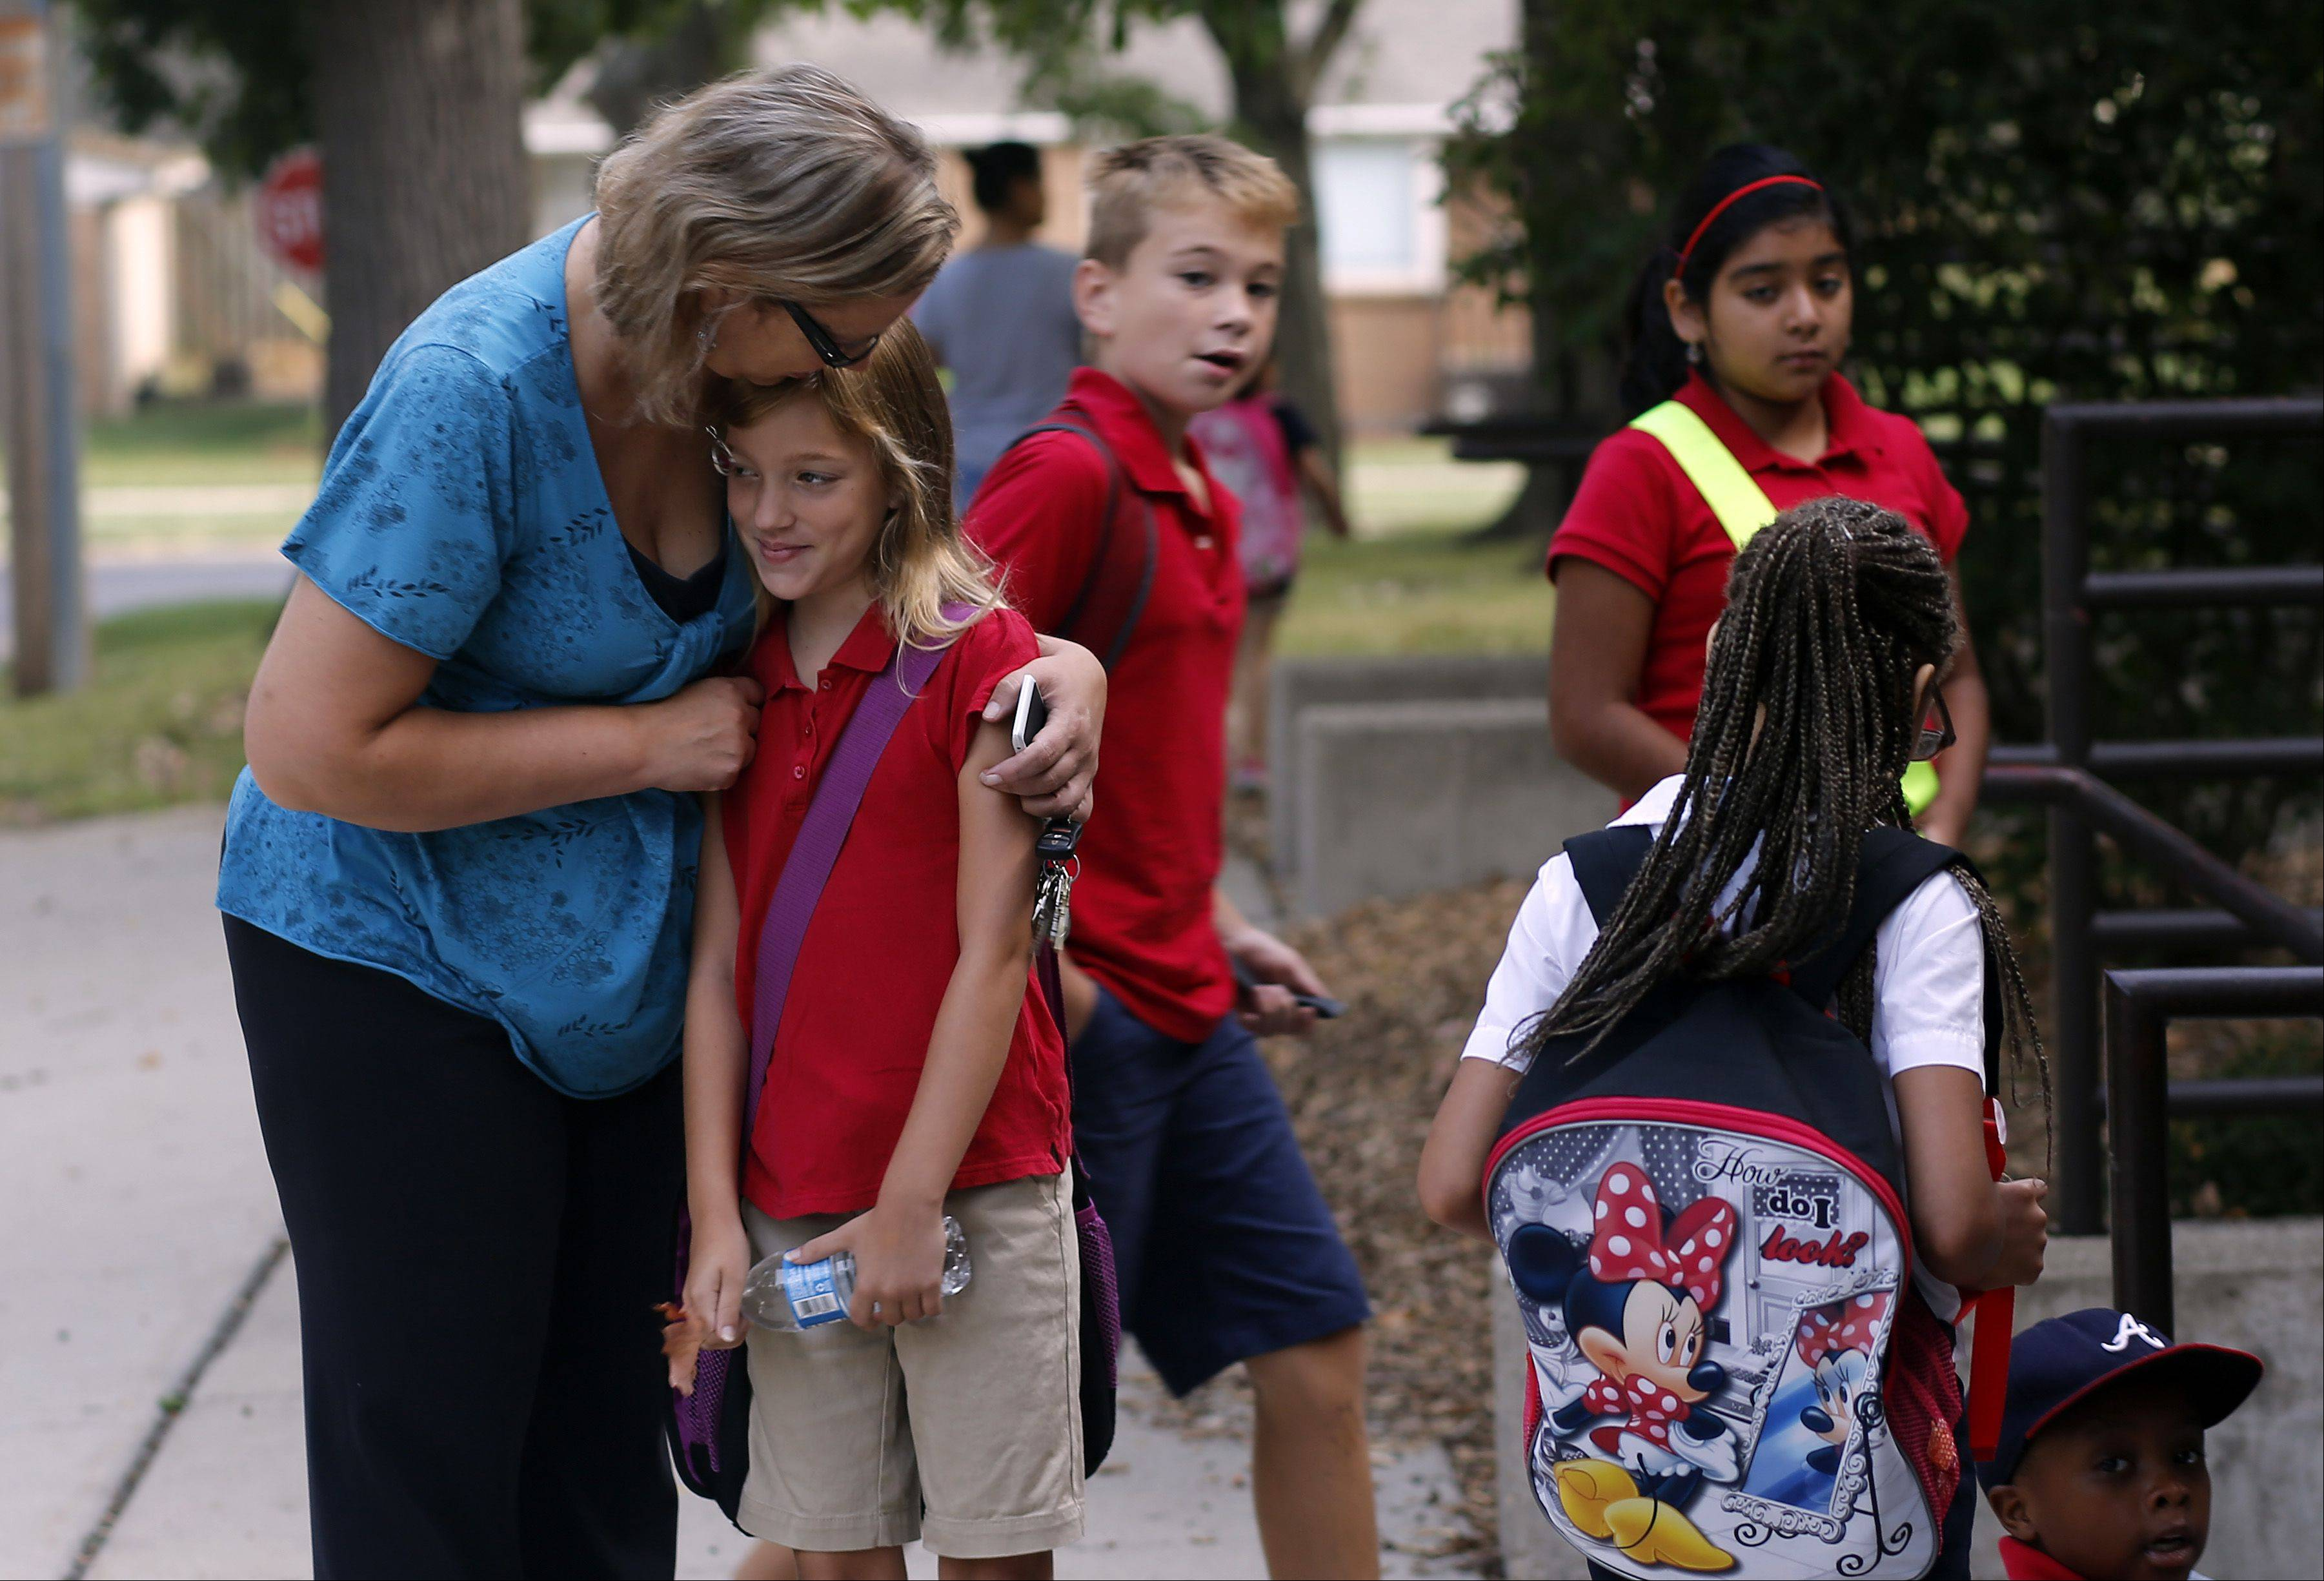 Linda Scham of Elgin gives daughter Kayla, 9, a big hug before class starts at Washington Elementary School in Elgin. Her son, Jakob, 10, walks directly behind them. Washington is one of 10 U-46 schools undergoing federal restructuring because of poor performance.